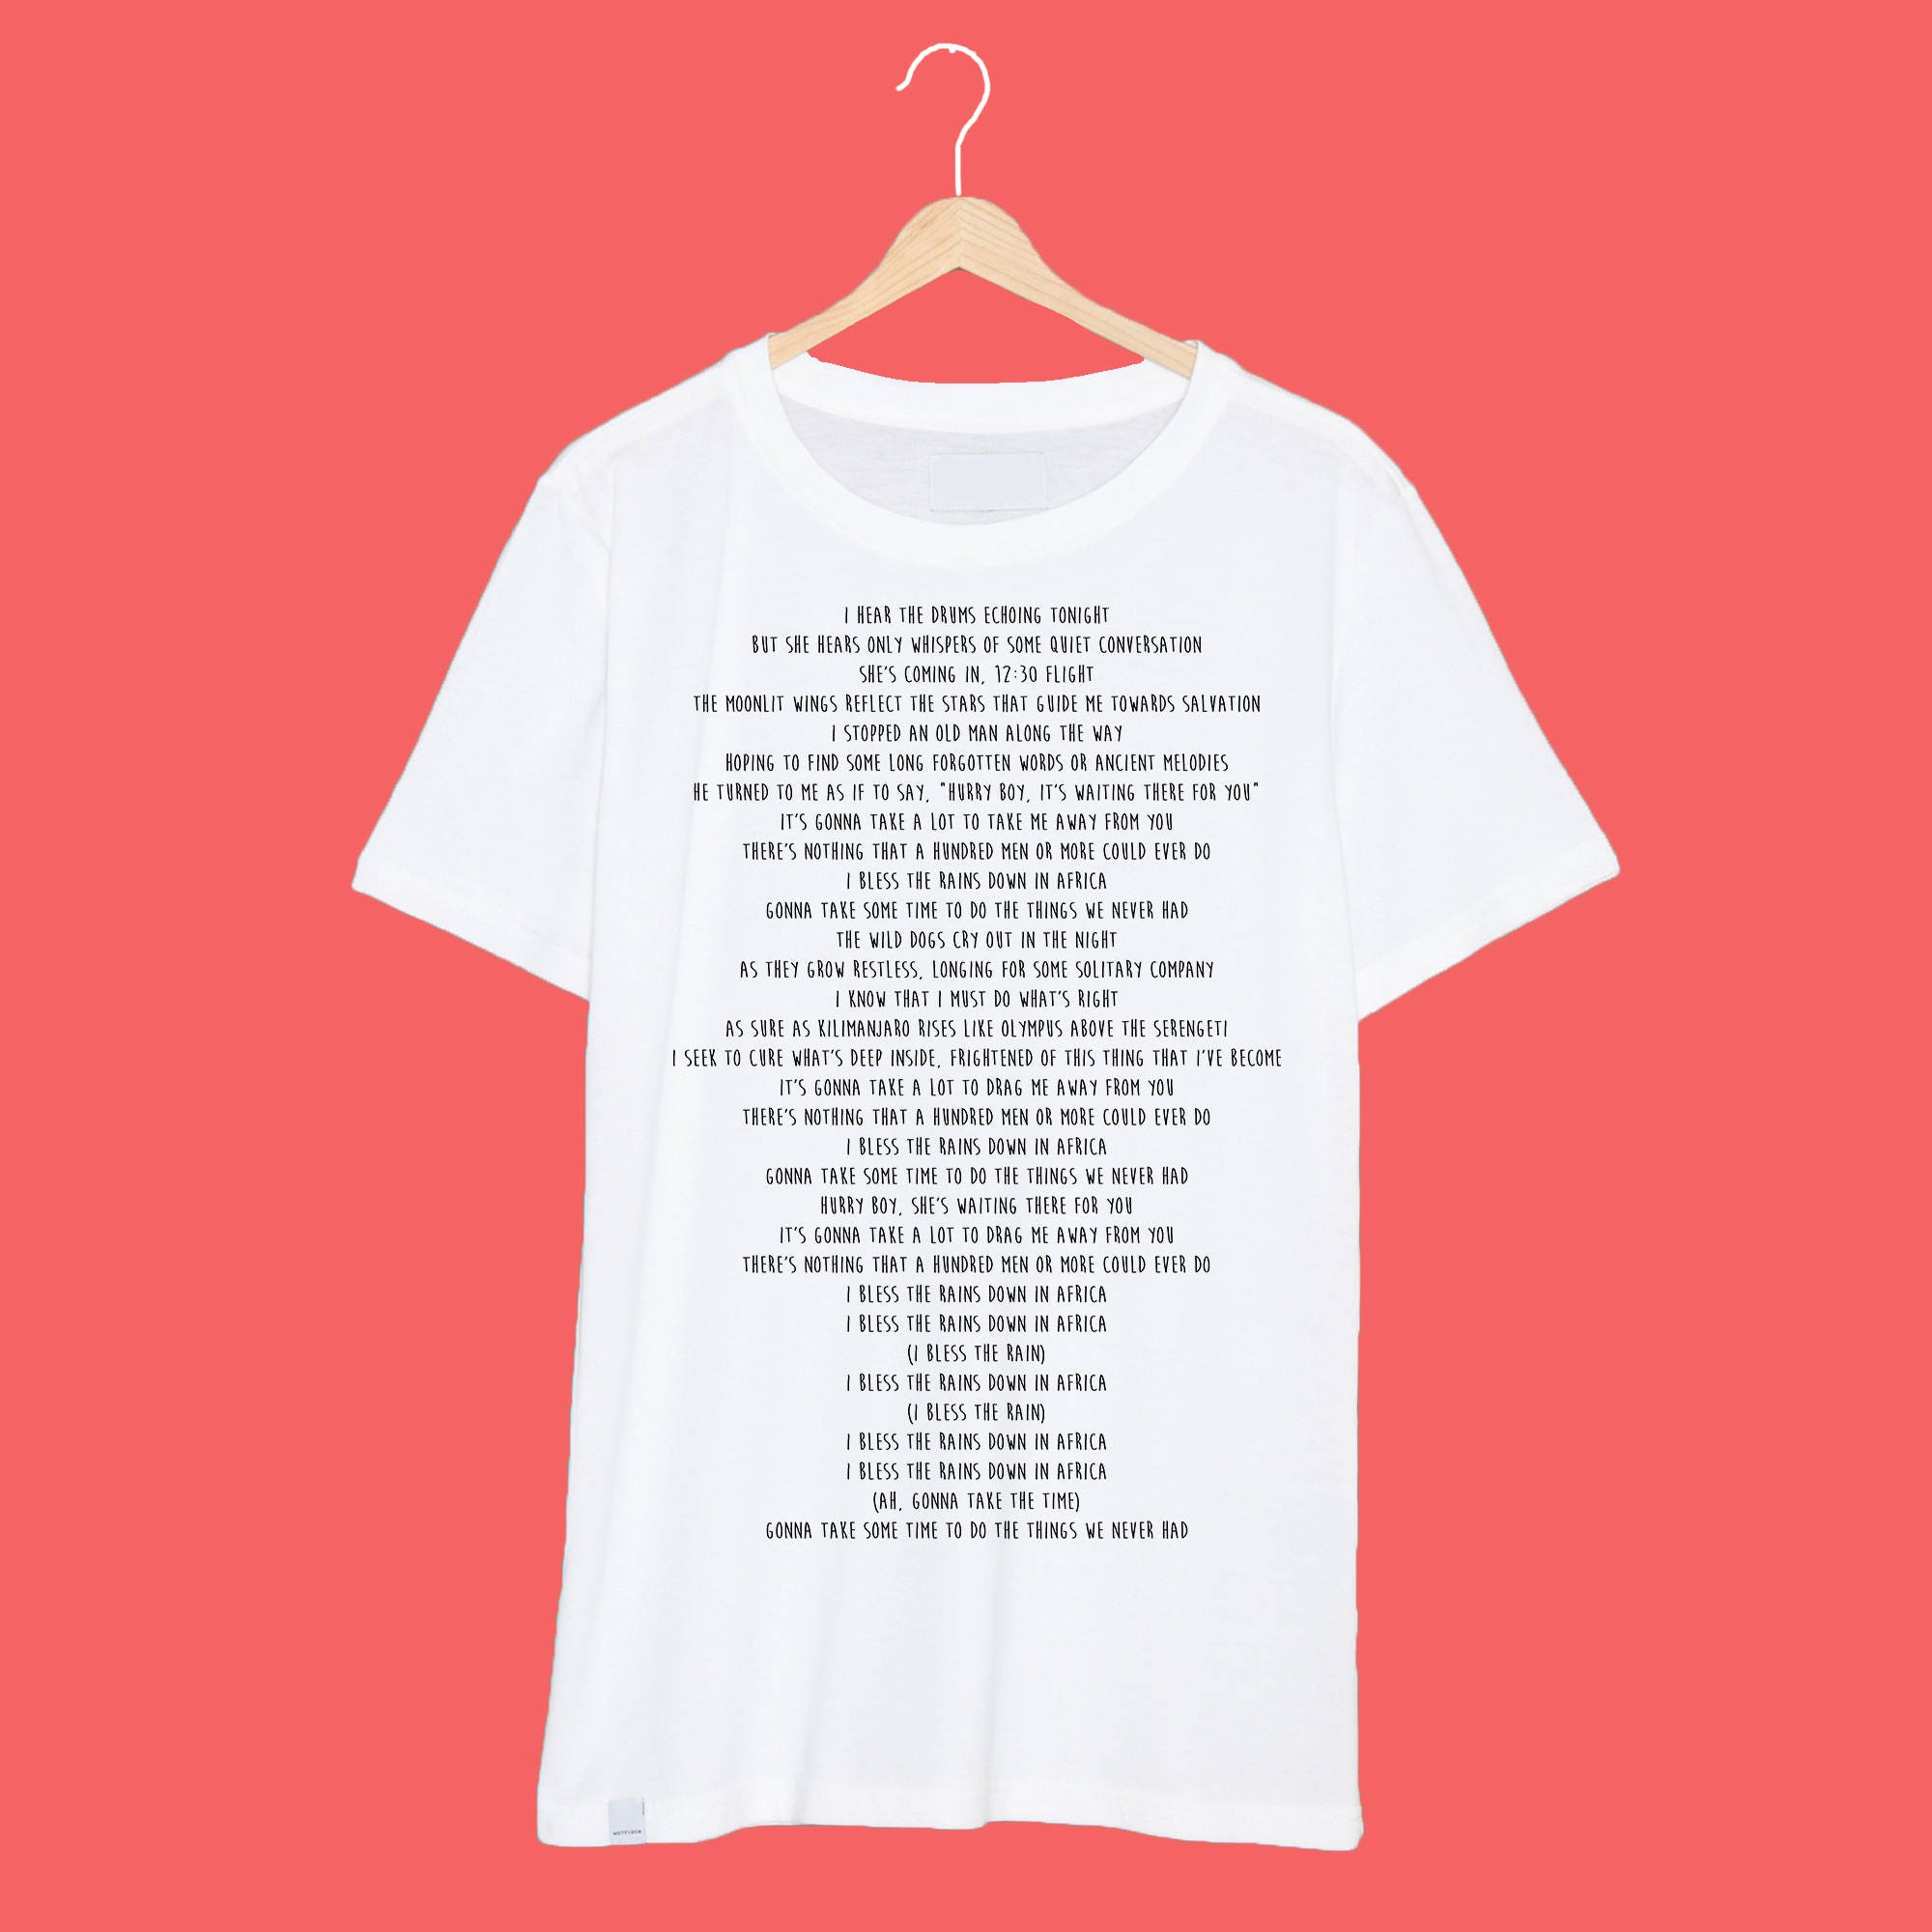 Africa Toto Lyrics Printed On A White T Shirt Meme